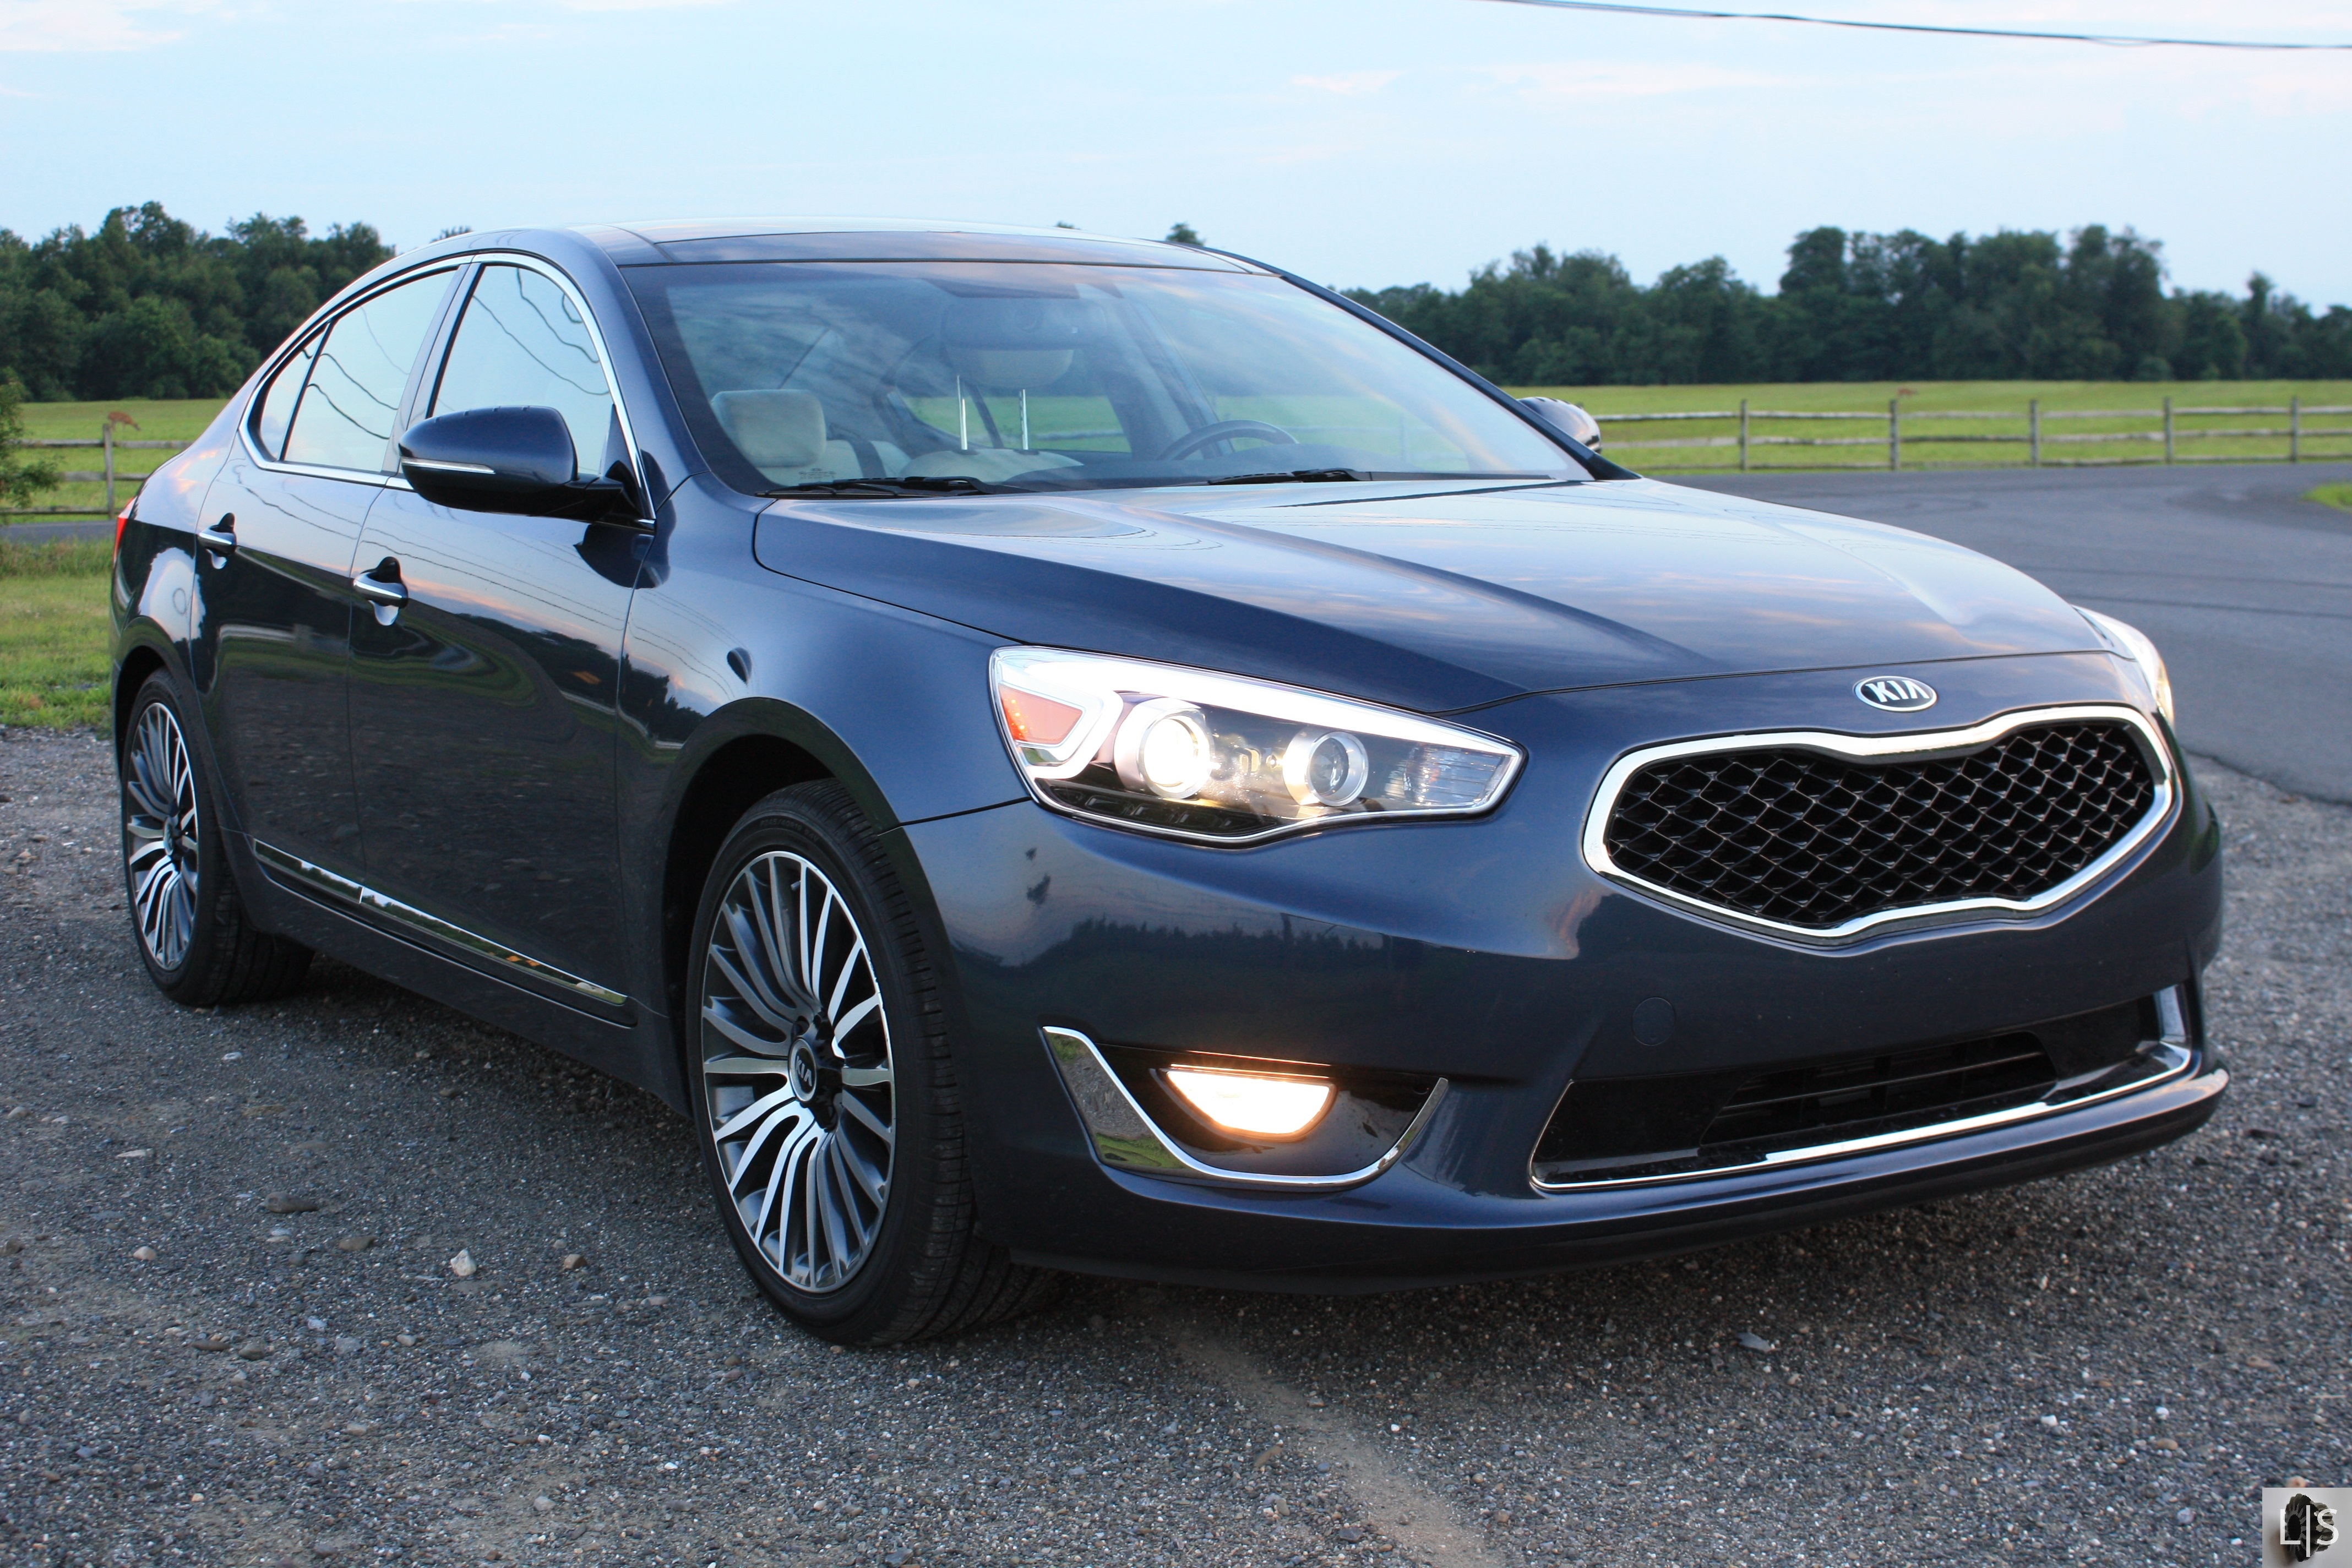 kia published kias blog liner at in cadenza new s slip luxury july limited